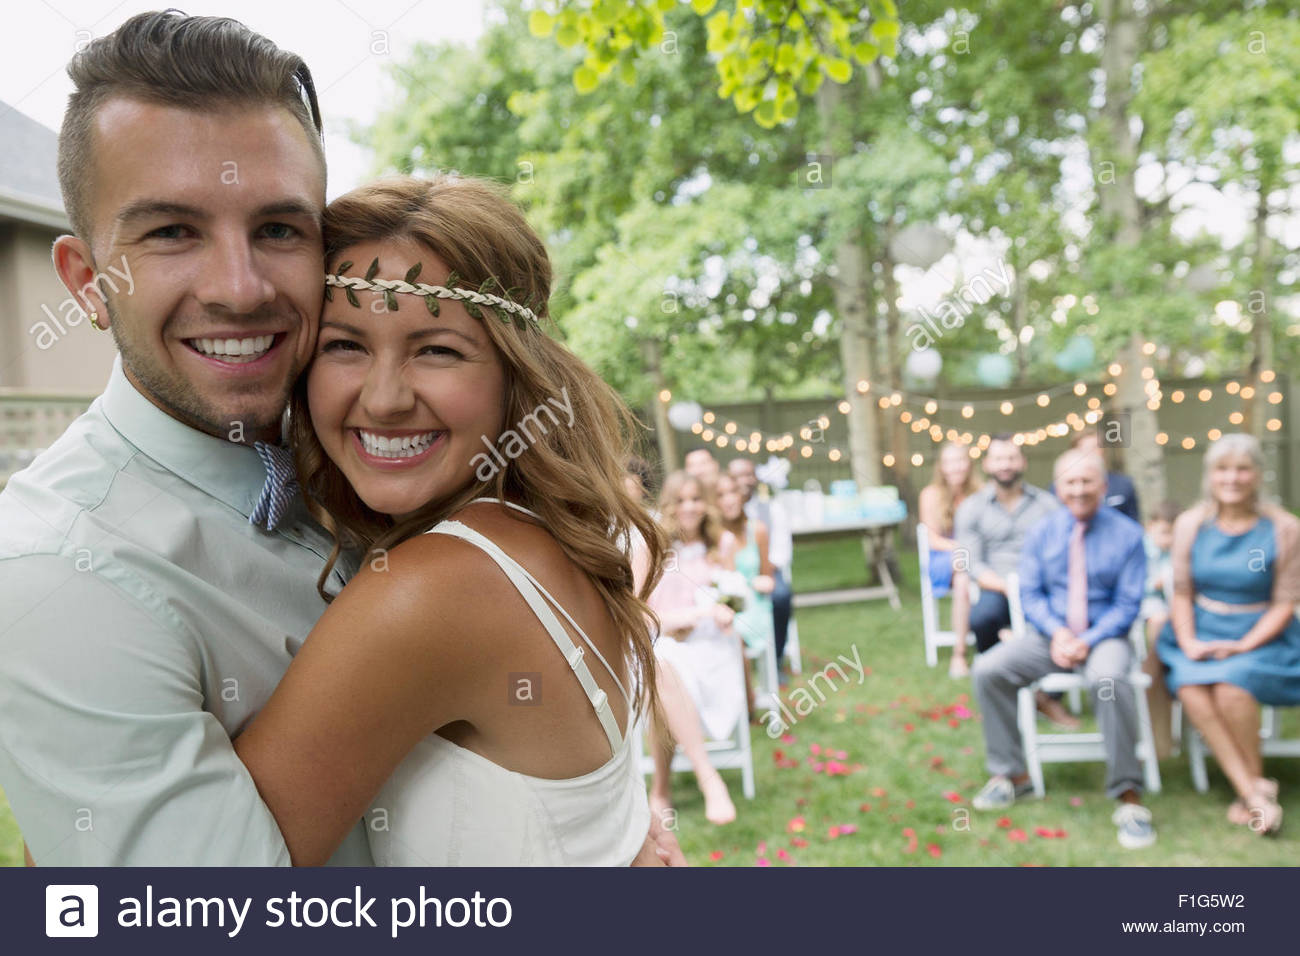 Portrait enthusiastic bride and groom at backyard wedding - Stock Image